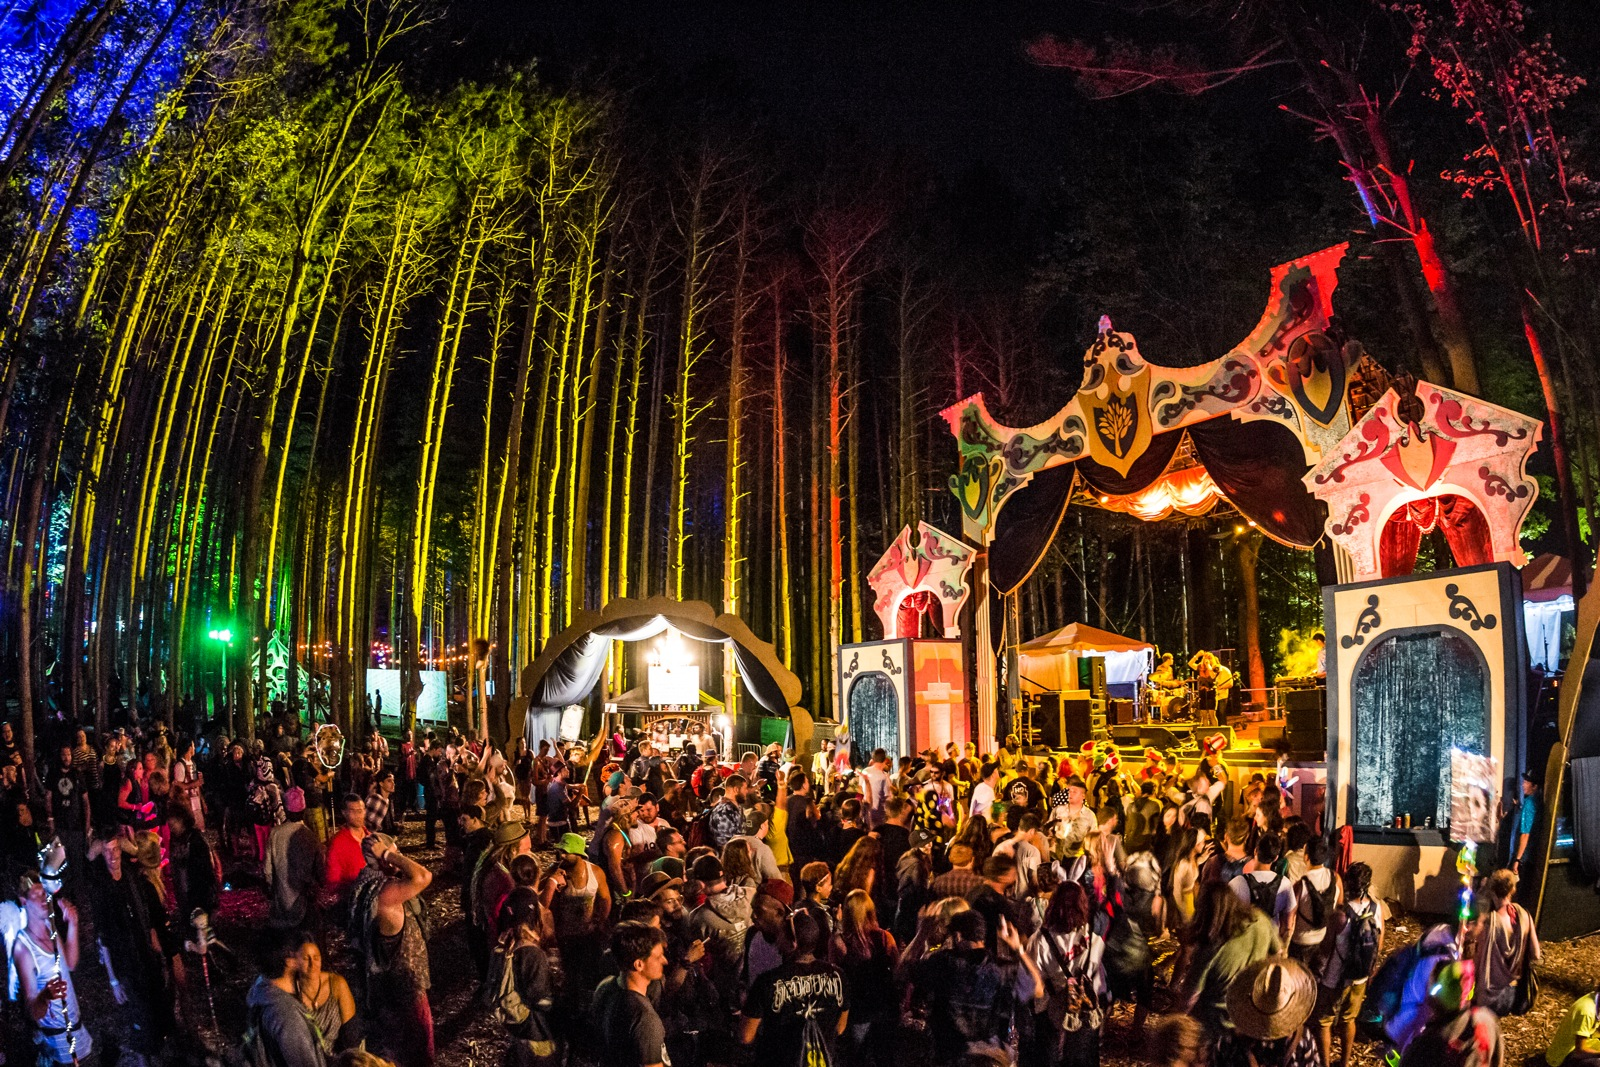 Electric_Forest_2015_aLIVE_2 - 2.jpg